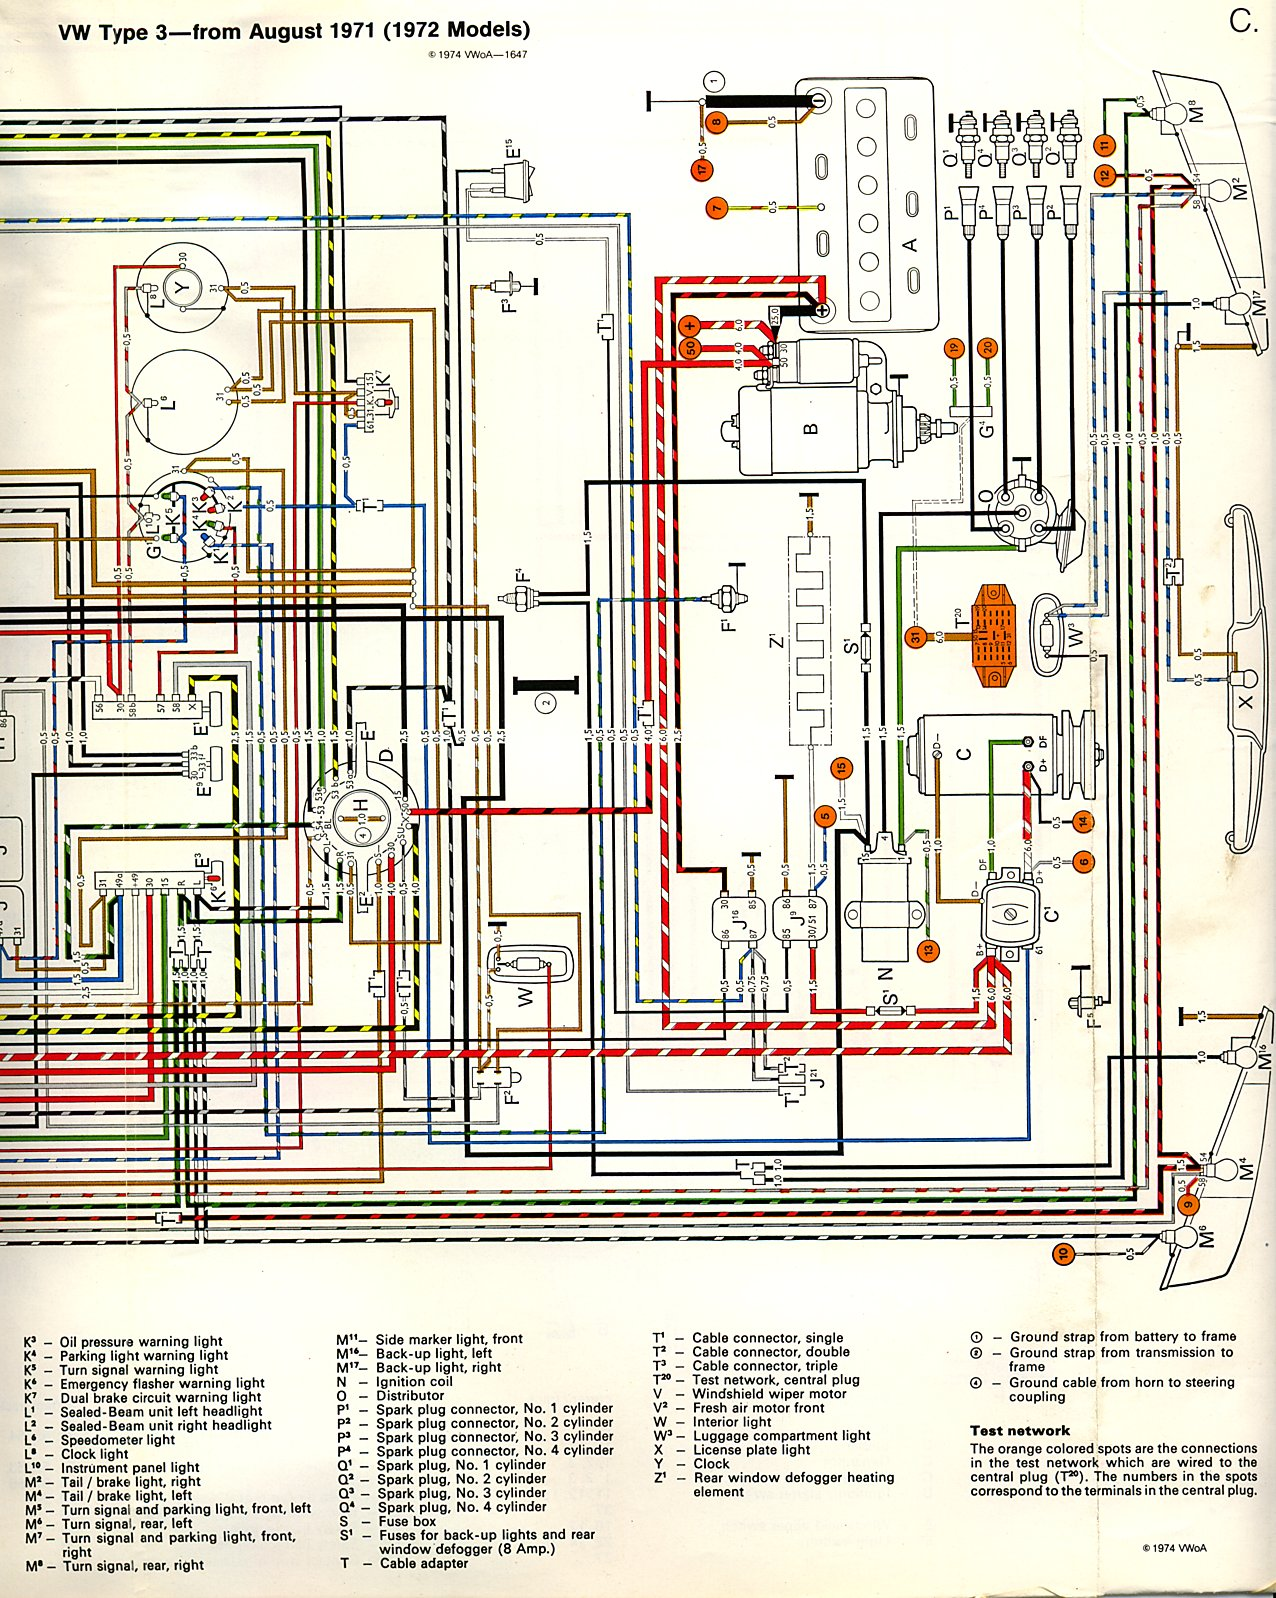 1968 vw type 1 wiring diagram 3 wire guitar pickup thesamba diagrams